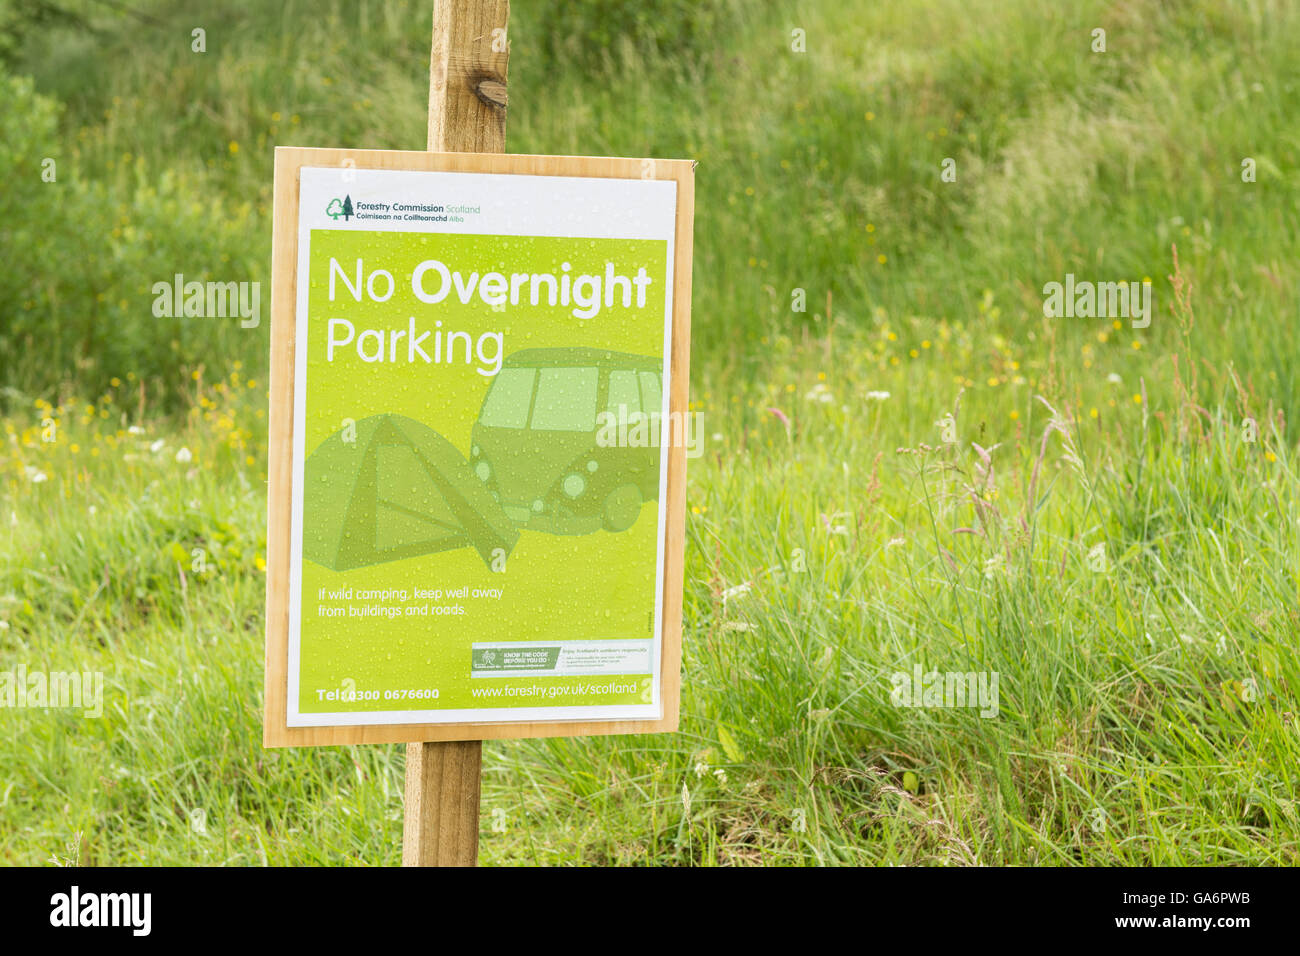 'No Overnight Parking' sign at Rest and be Thankful, Glen Croe, Scotland, UK - Stock Image